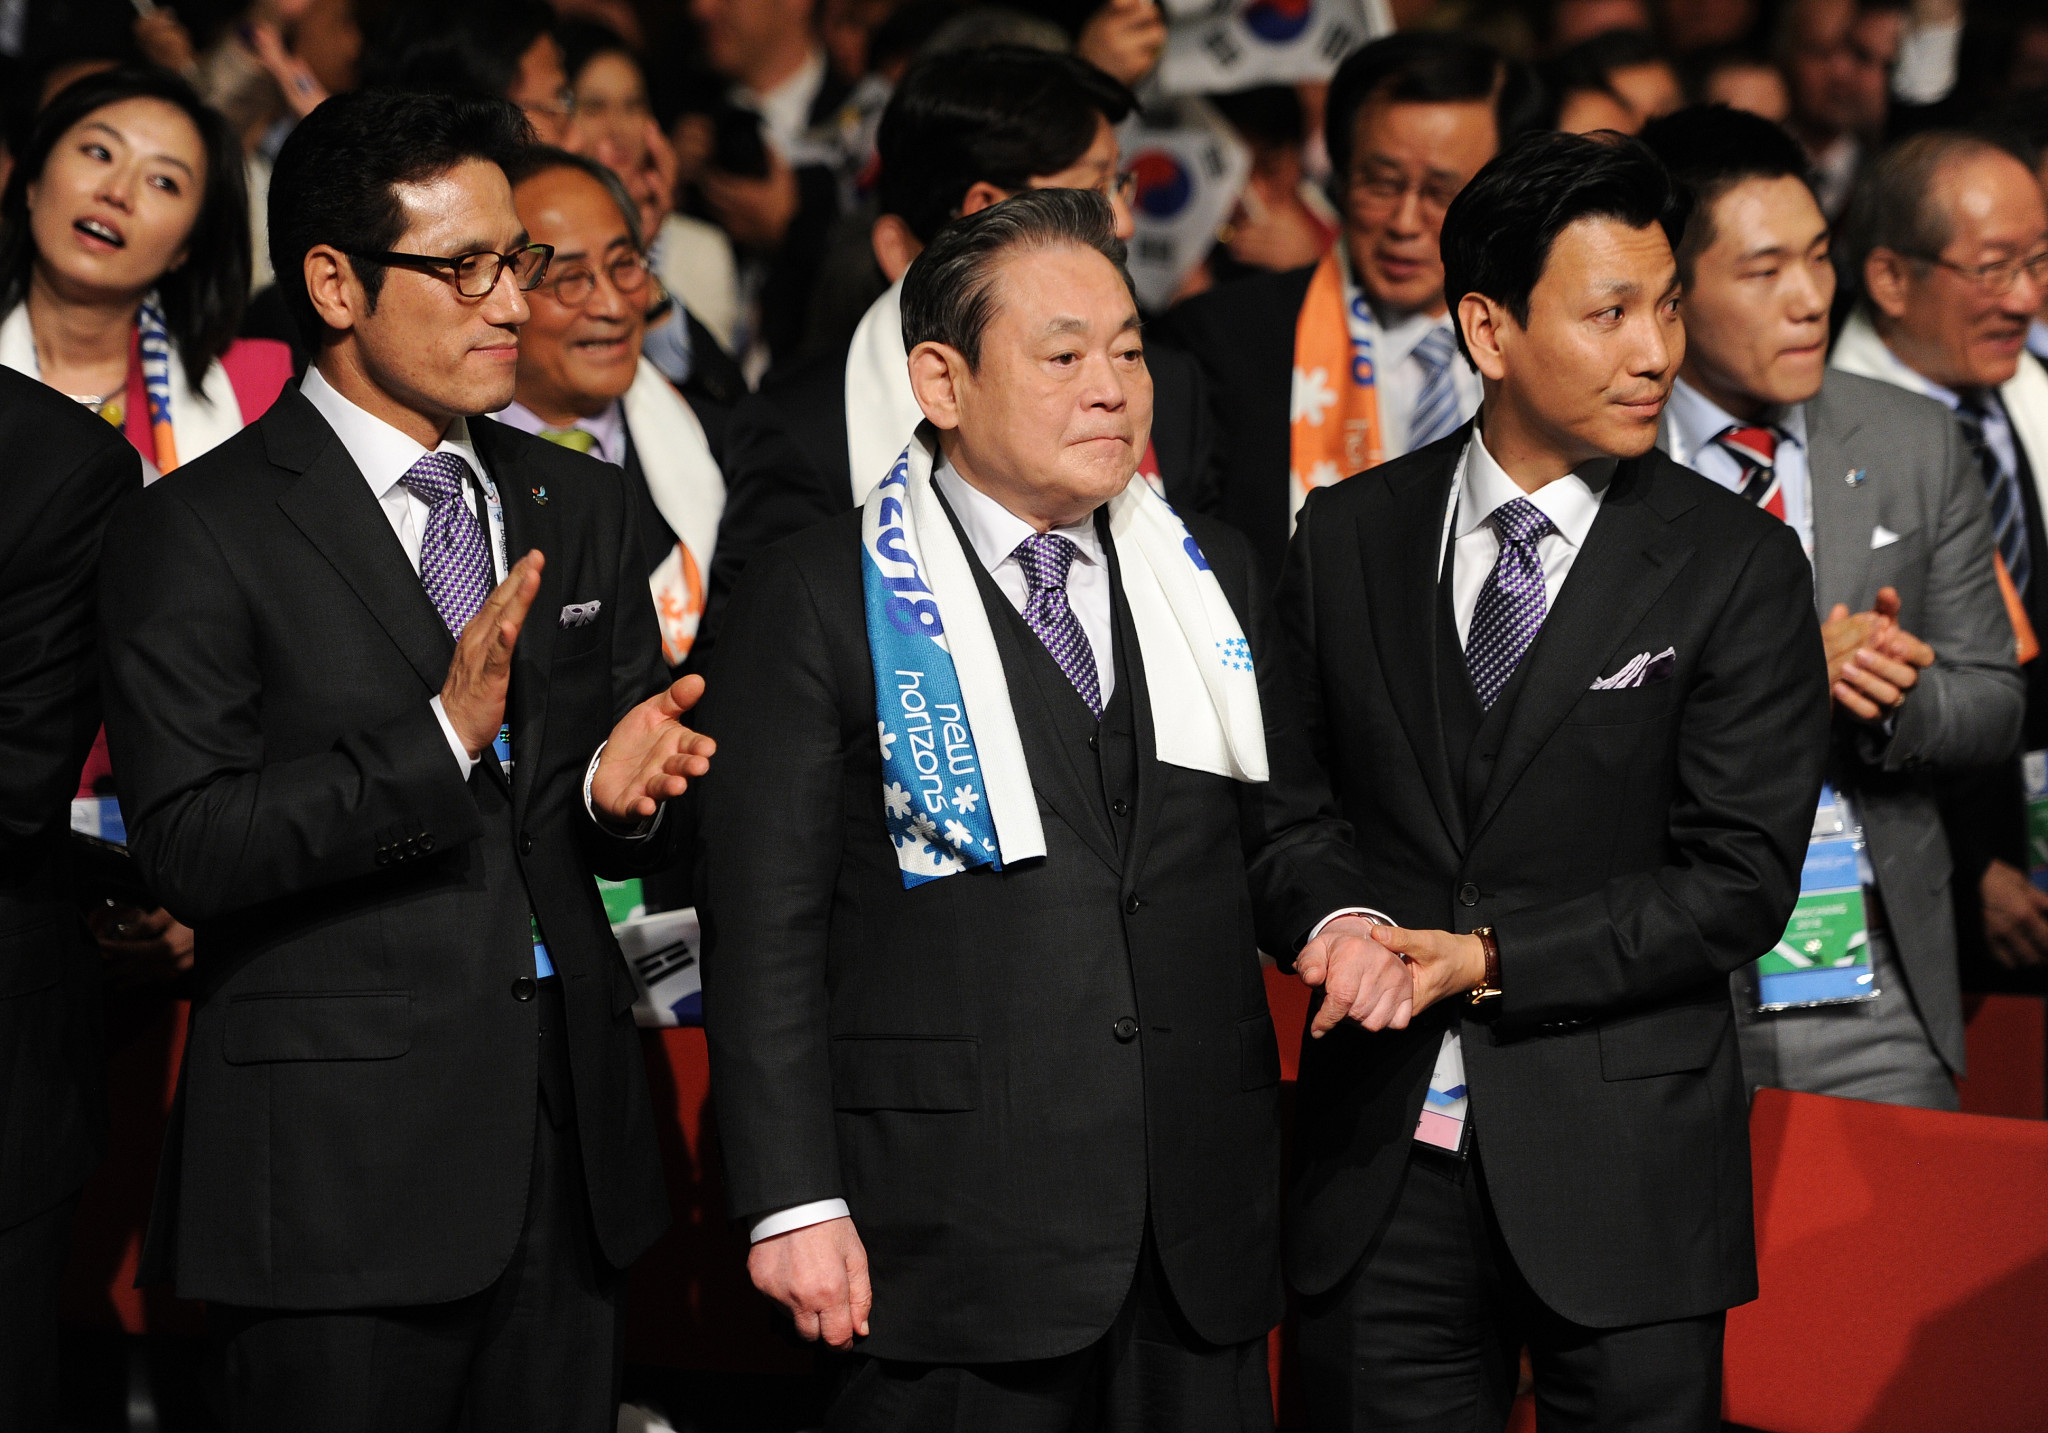 Lee Kun-hee, centre, was a key figure in Pyeongchang's successful Winter Olympic bid ©Getty Images